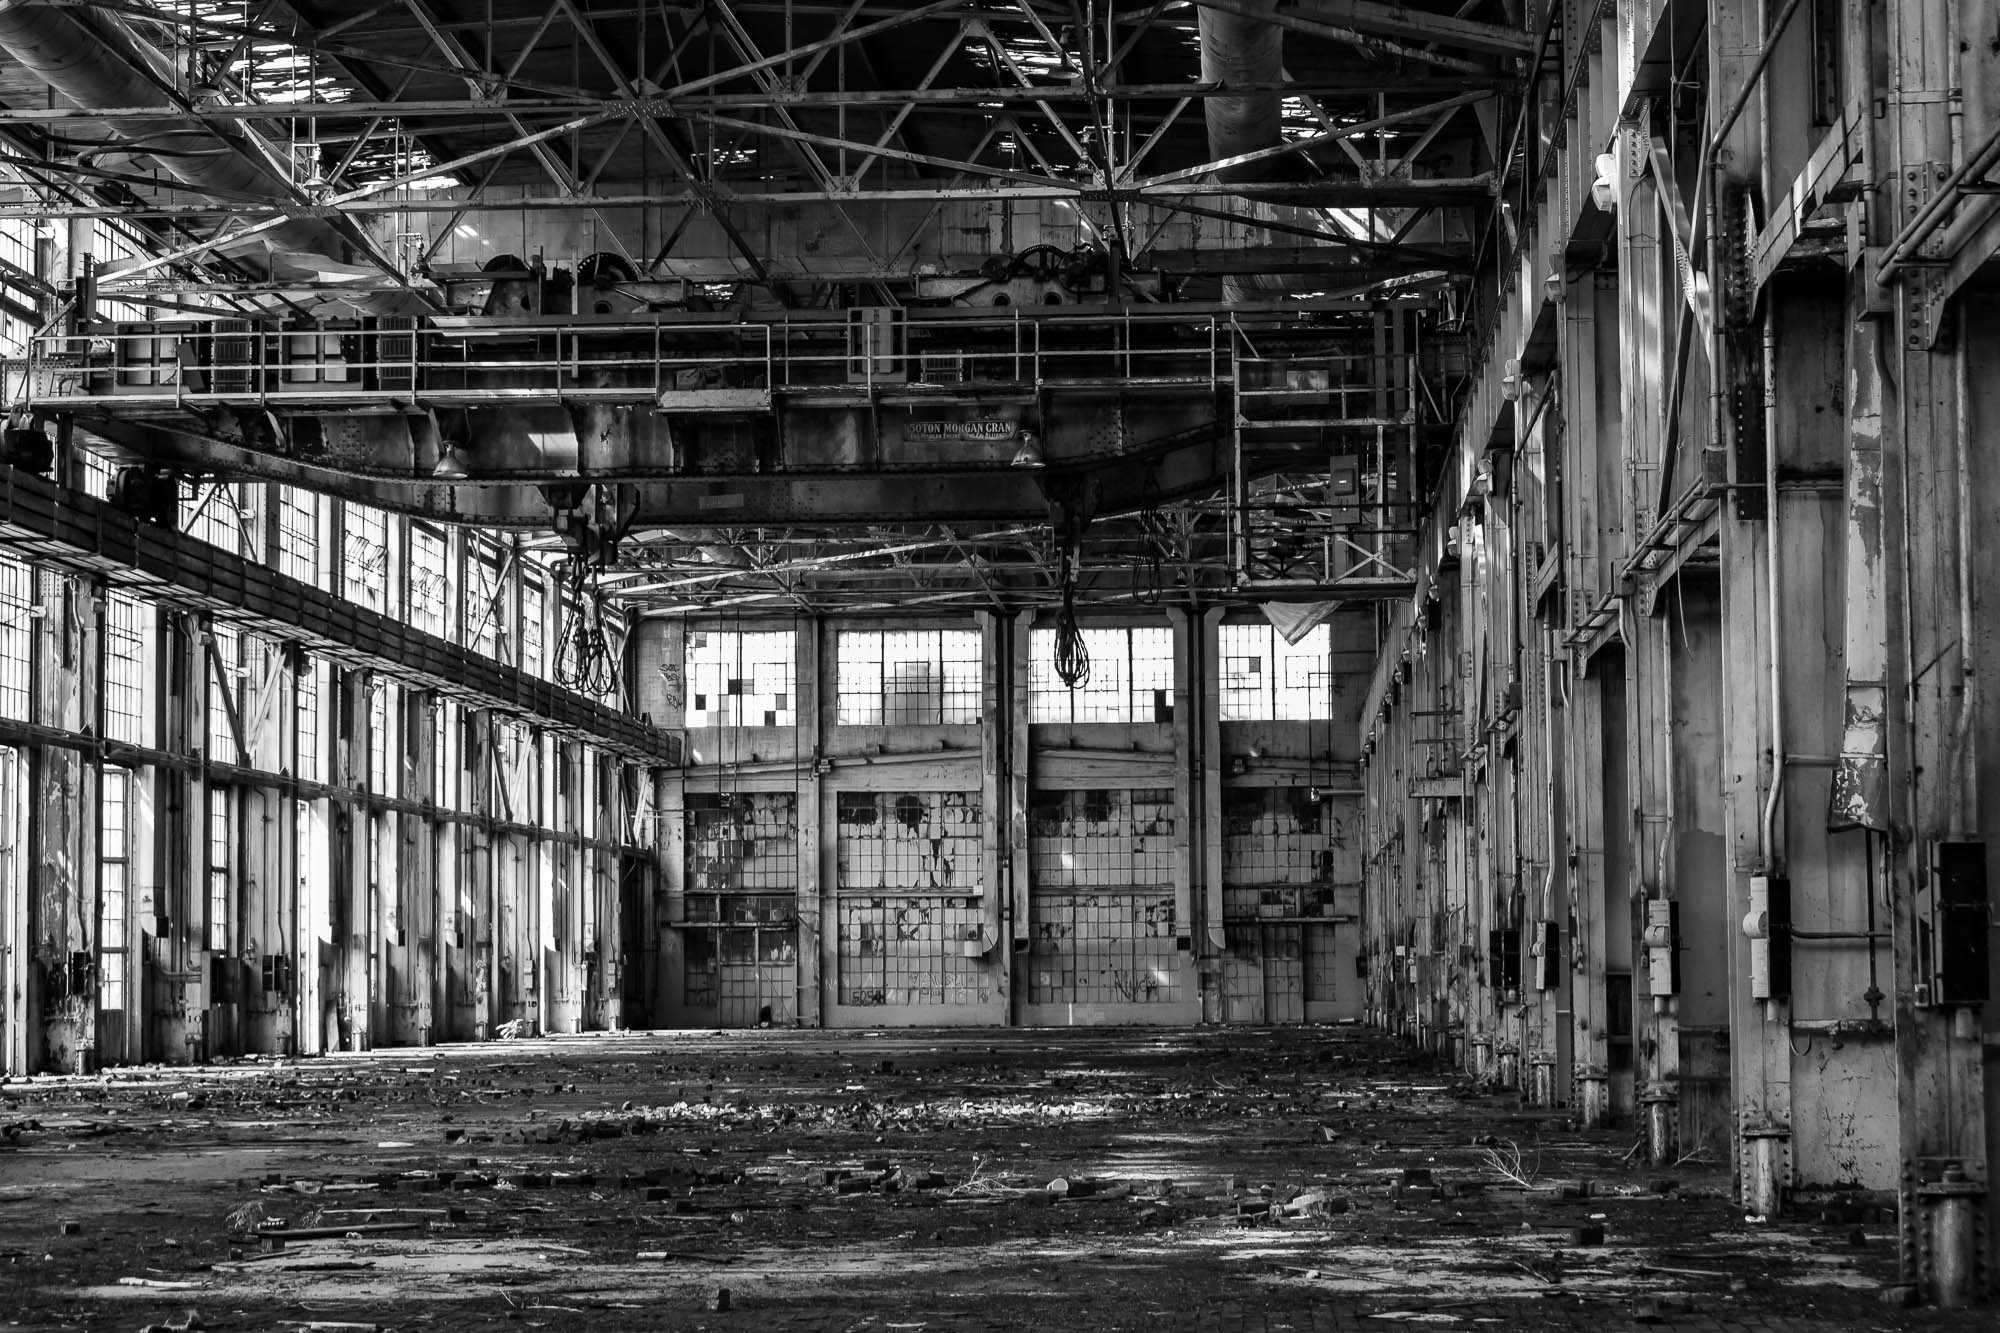 Industrial Age Decay